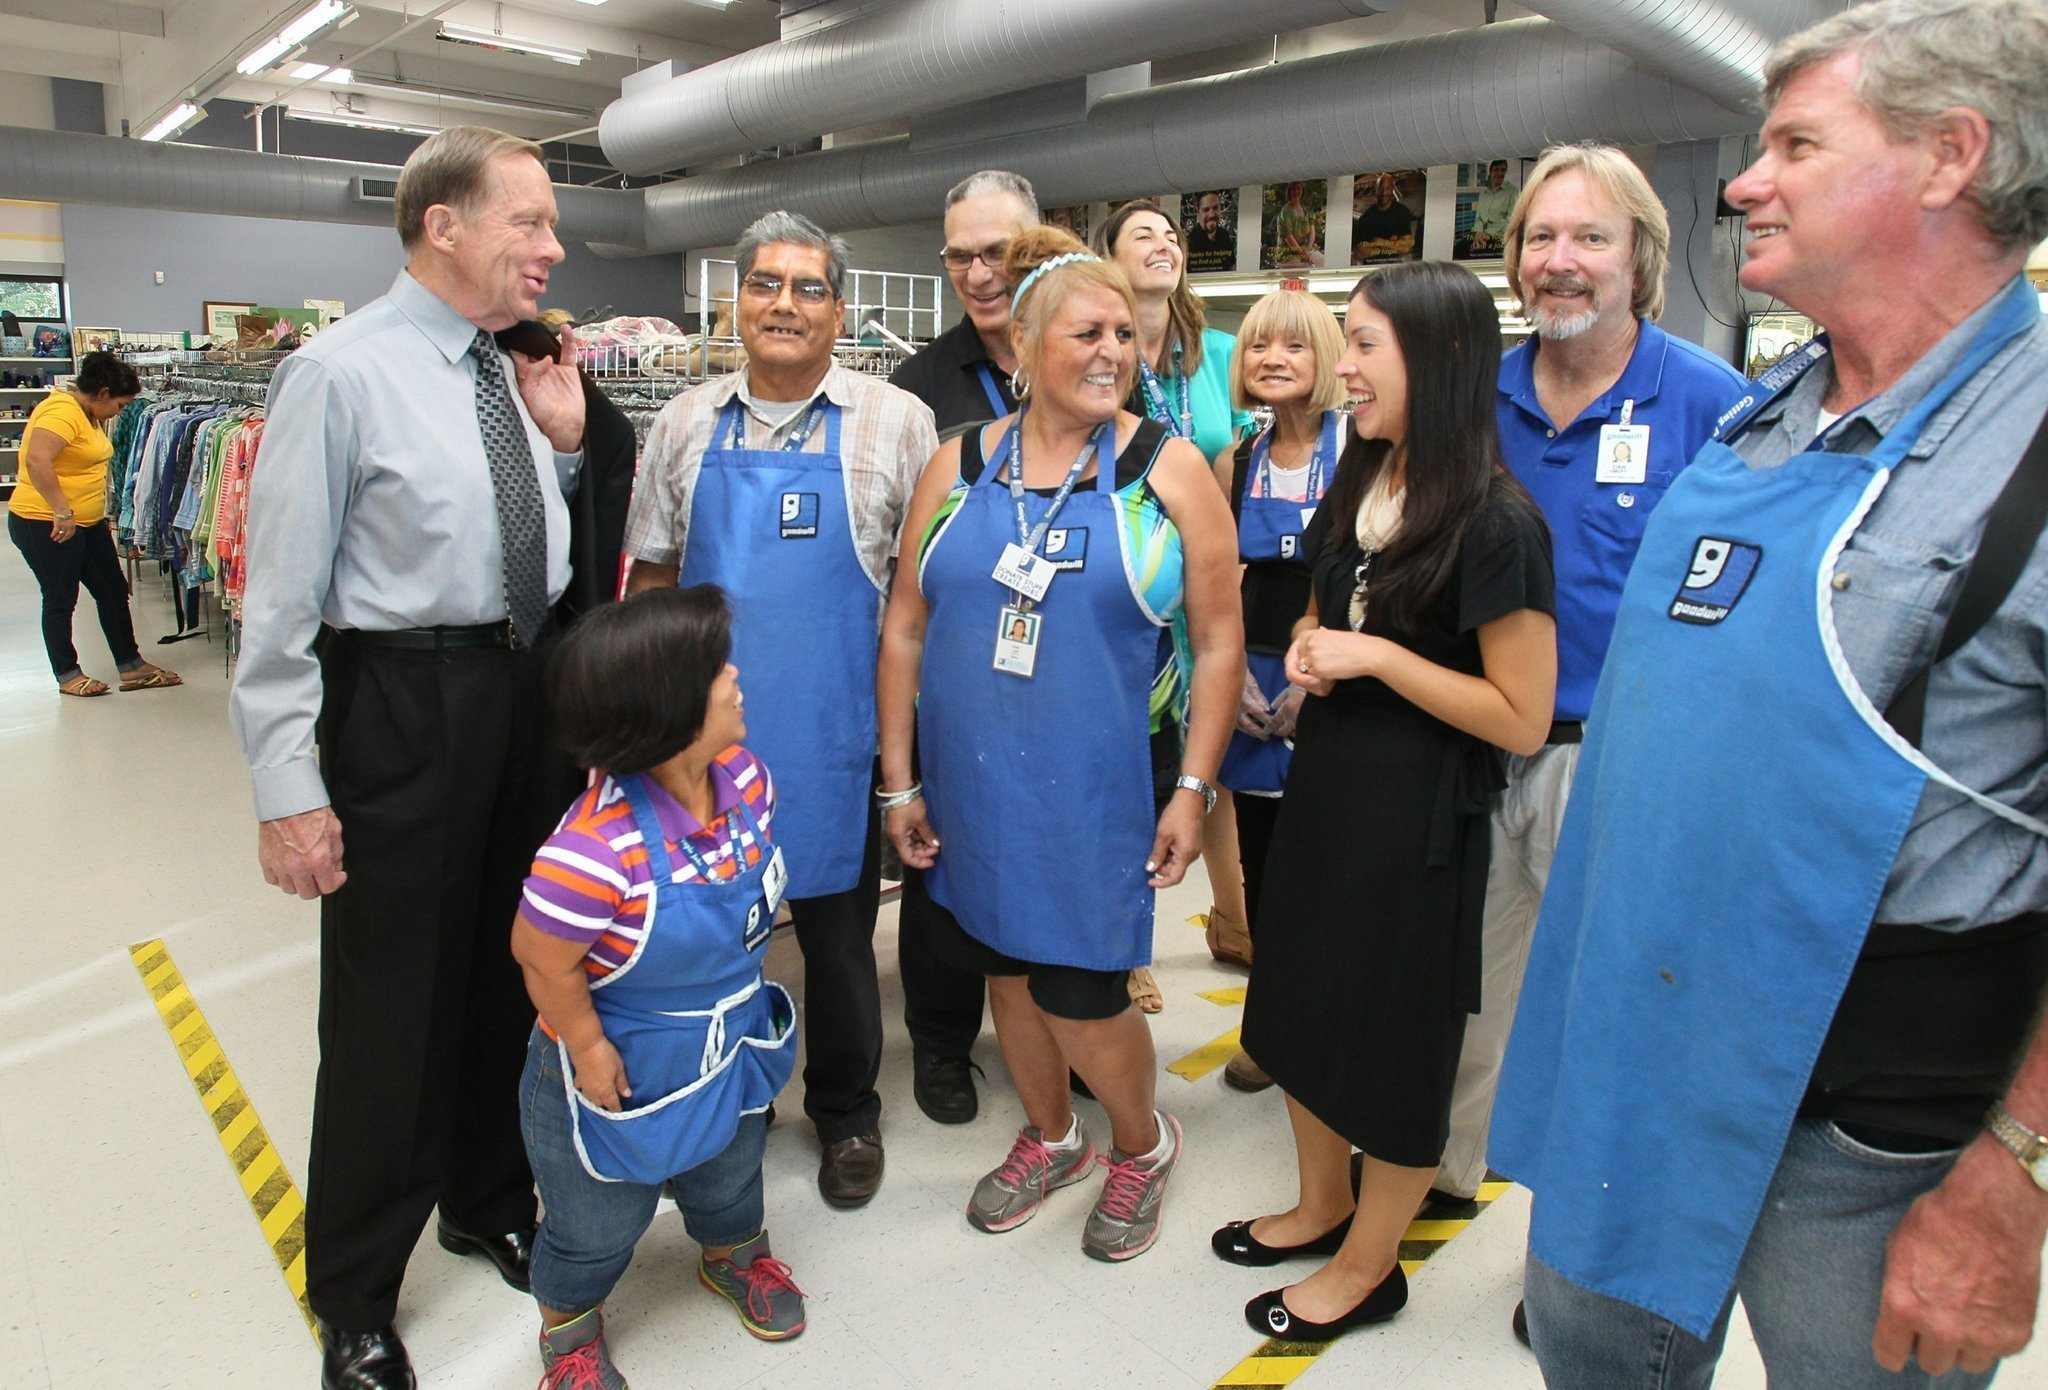 San diego top workplaces goodwill industries the san for Michaels crafts job application